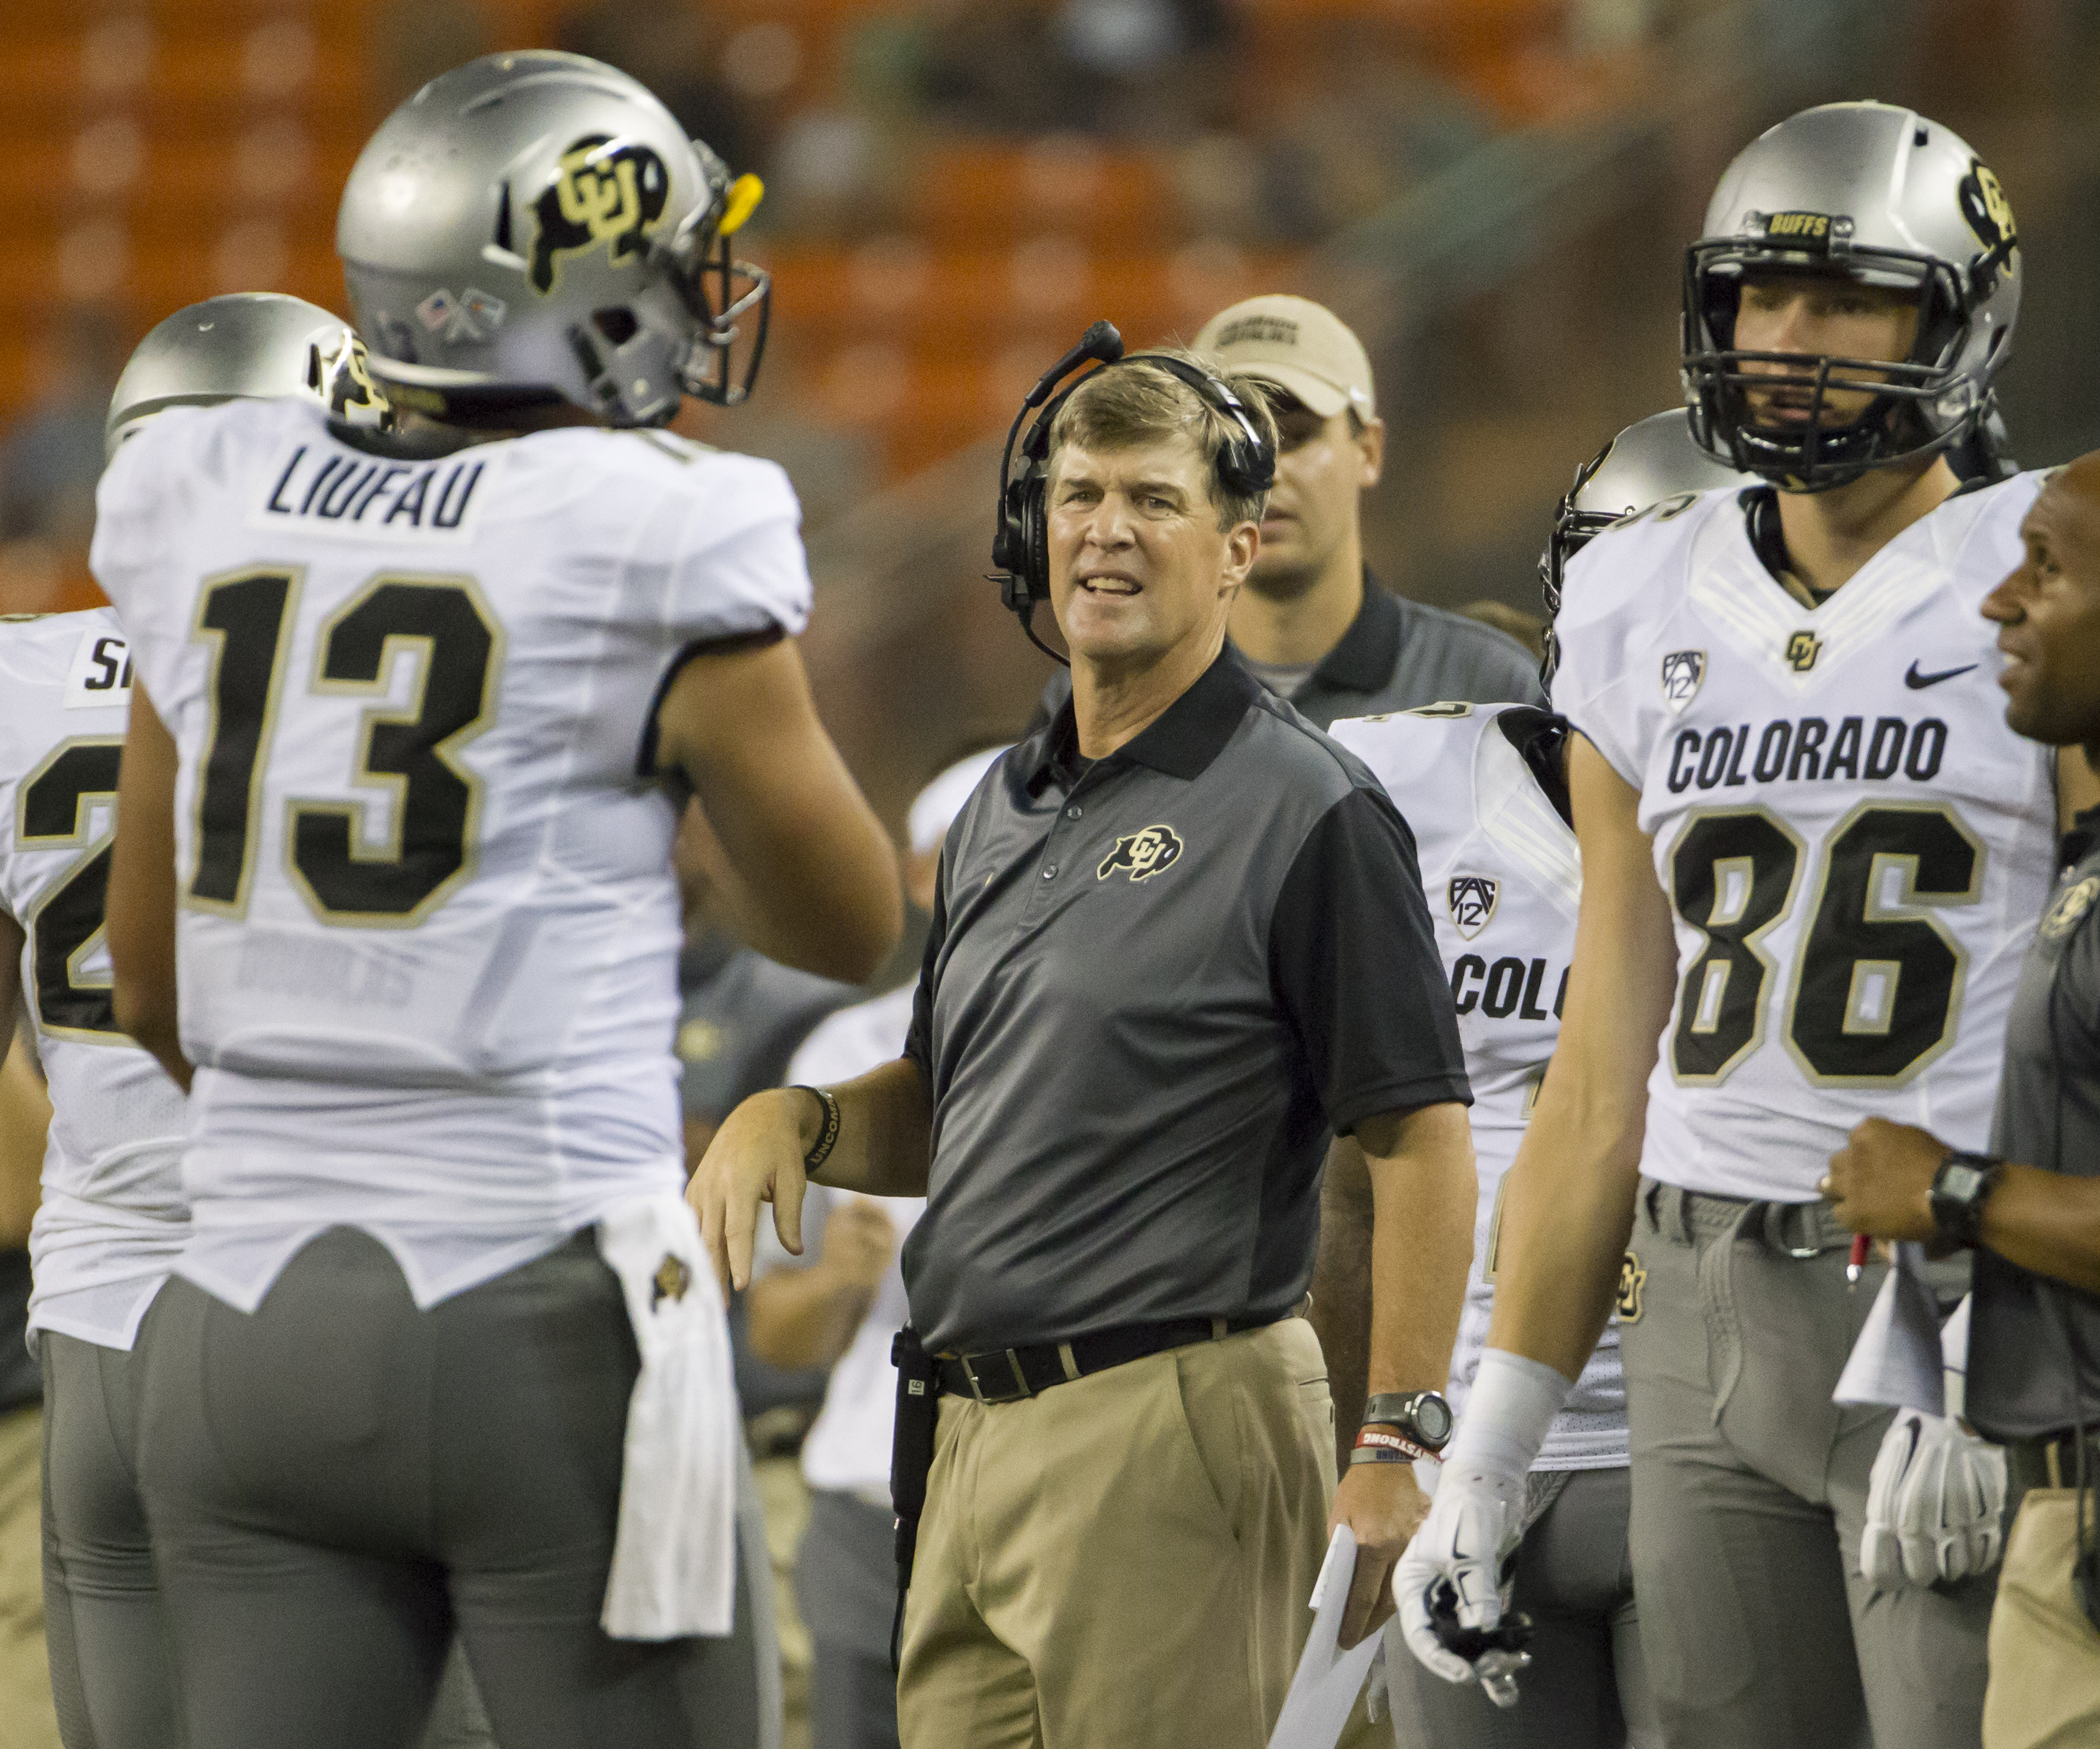 Colorado head coach Mike MacIntyre, center, gets ready to talk to his team during a timeout as Colorado quarterback Sefo Liufau (13) and tight end Dylan Keeney (86) look on in the second quarter of an NCAA college football game, Thursday, Sept. 3, 2015, i